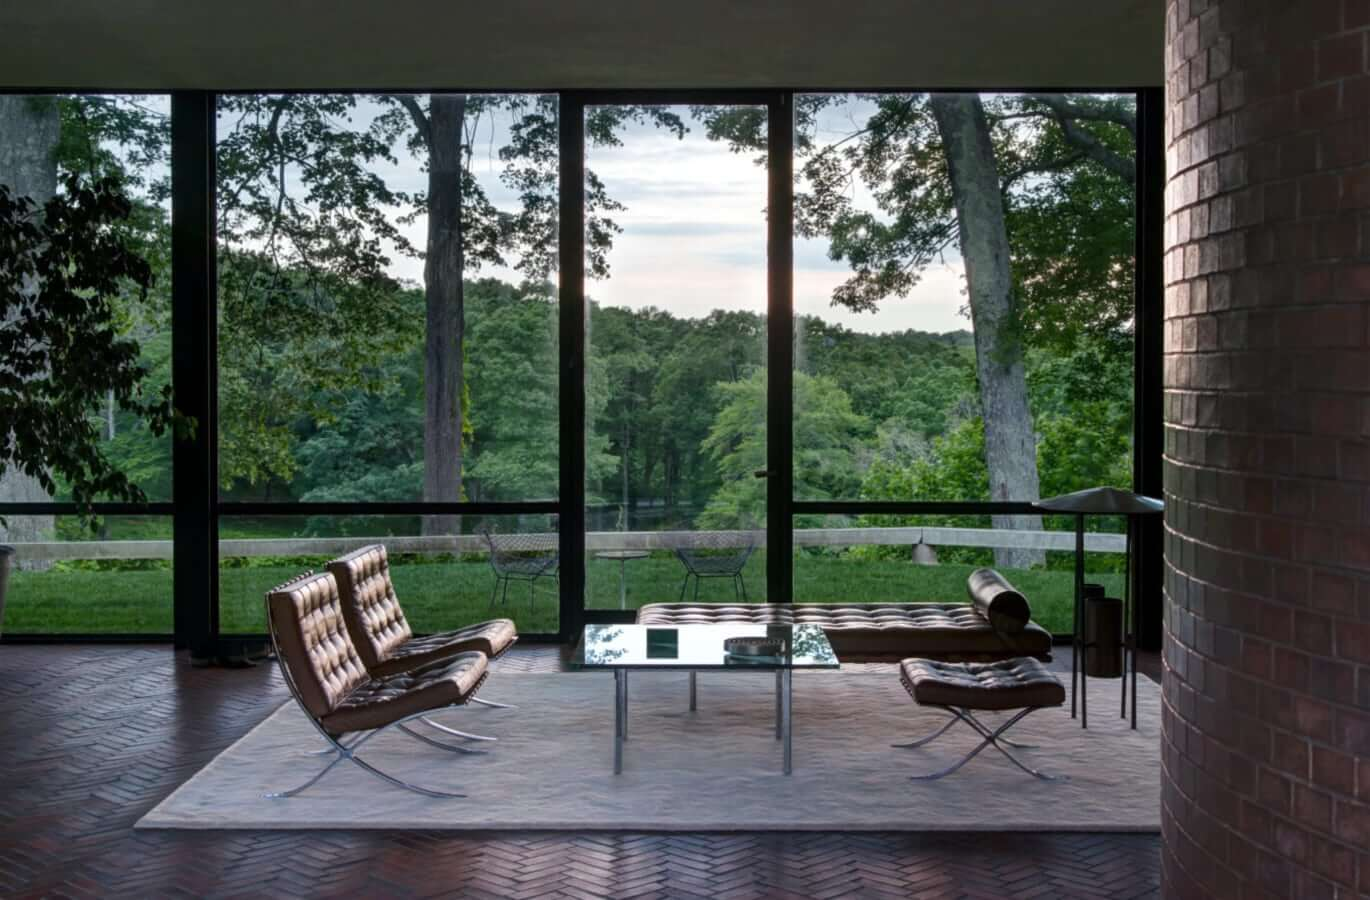 Barcelona daybed in Philip Johnson's Glass House